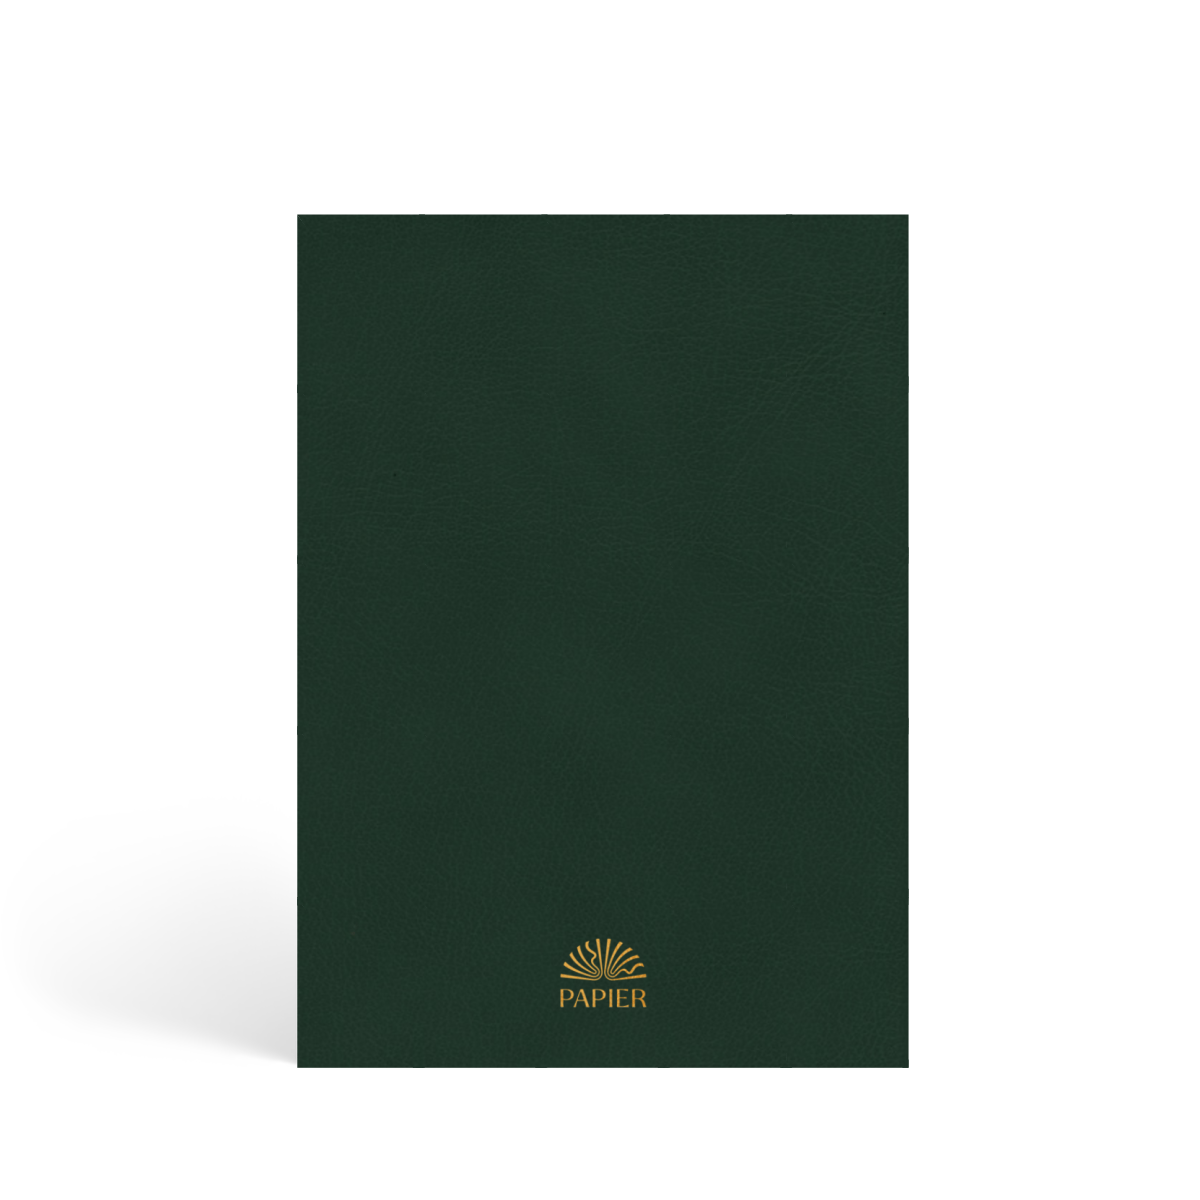 Https%3a%2f%2fwww.papier.com%2fproduct image%2f99145%2f5%2fpine green bee 25253 back 1576670971.png?ixlib=rb 1.1